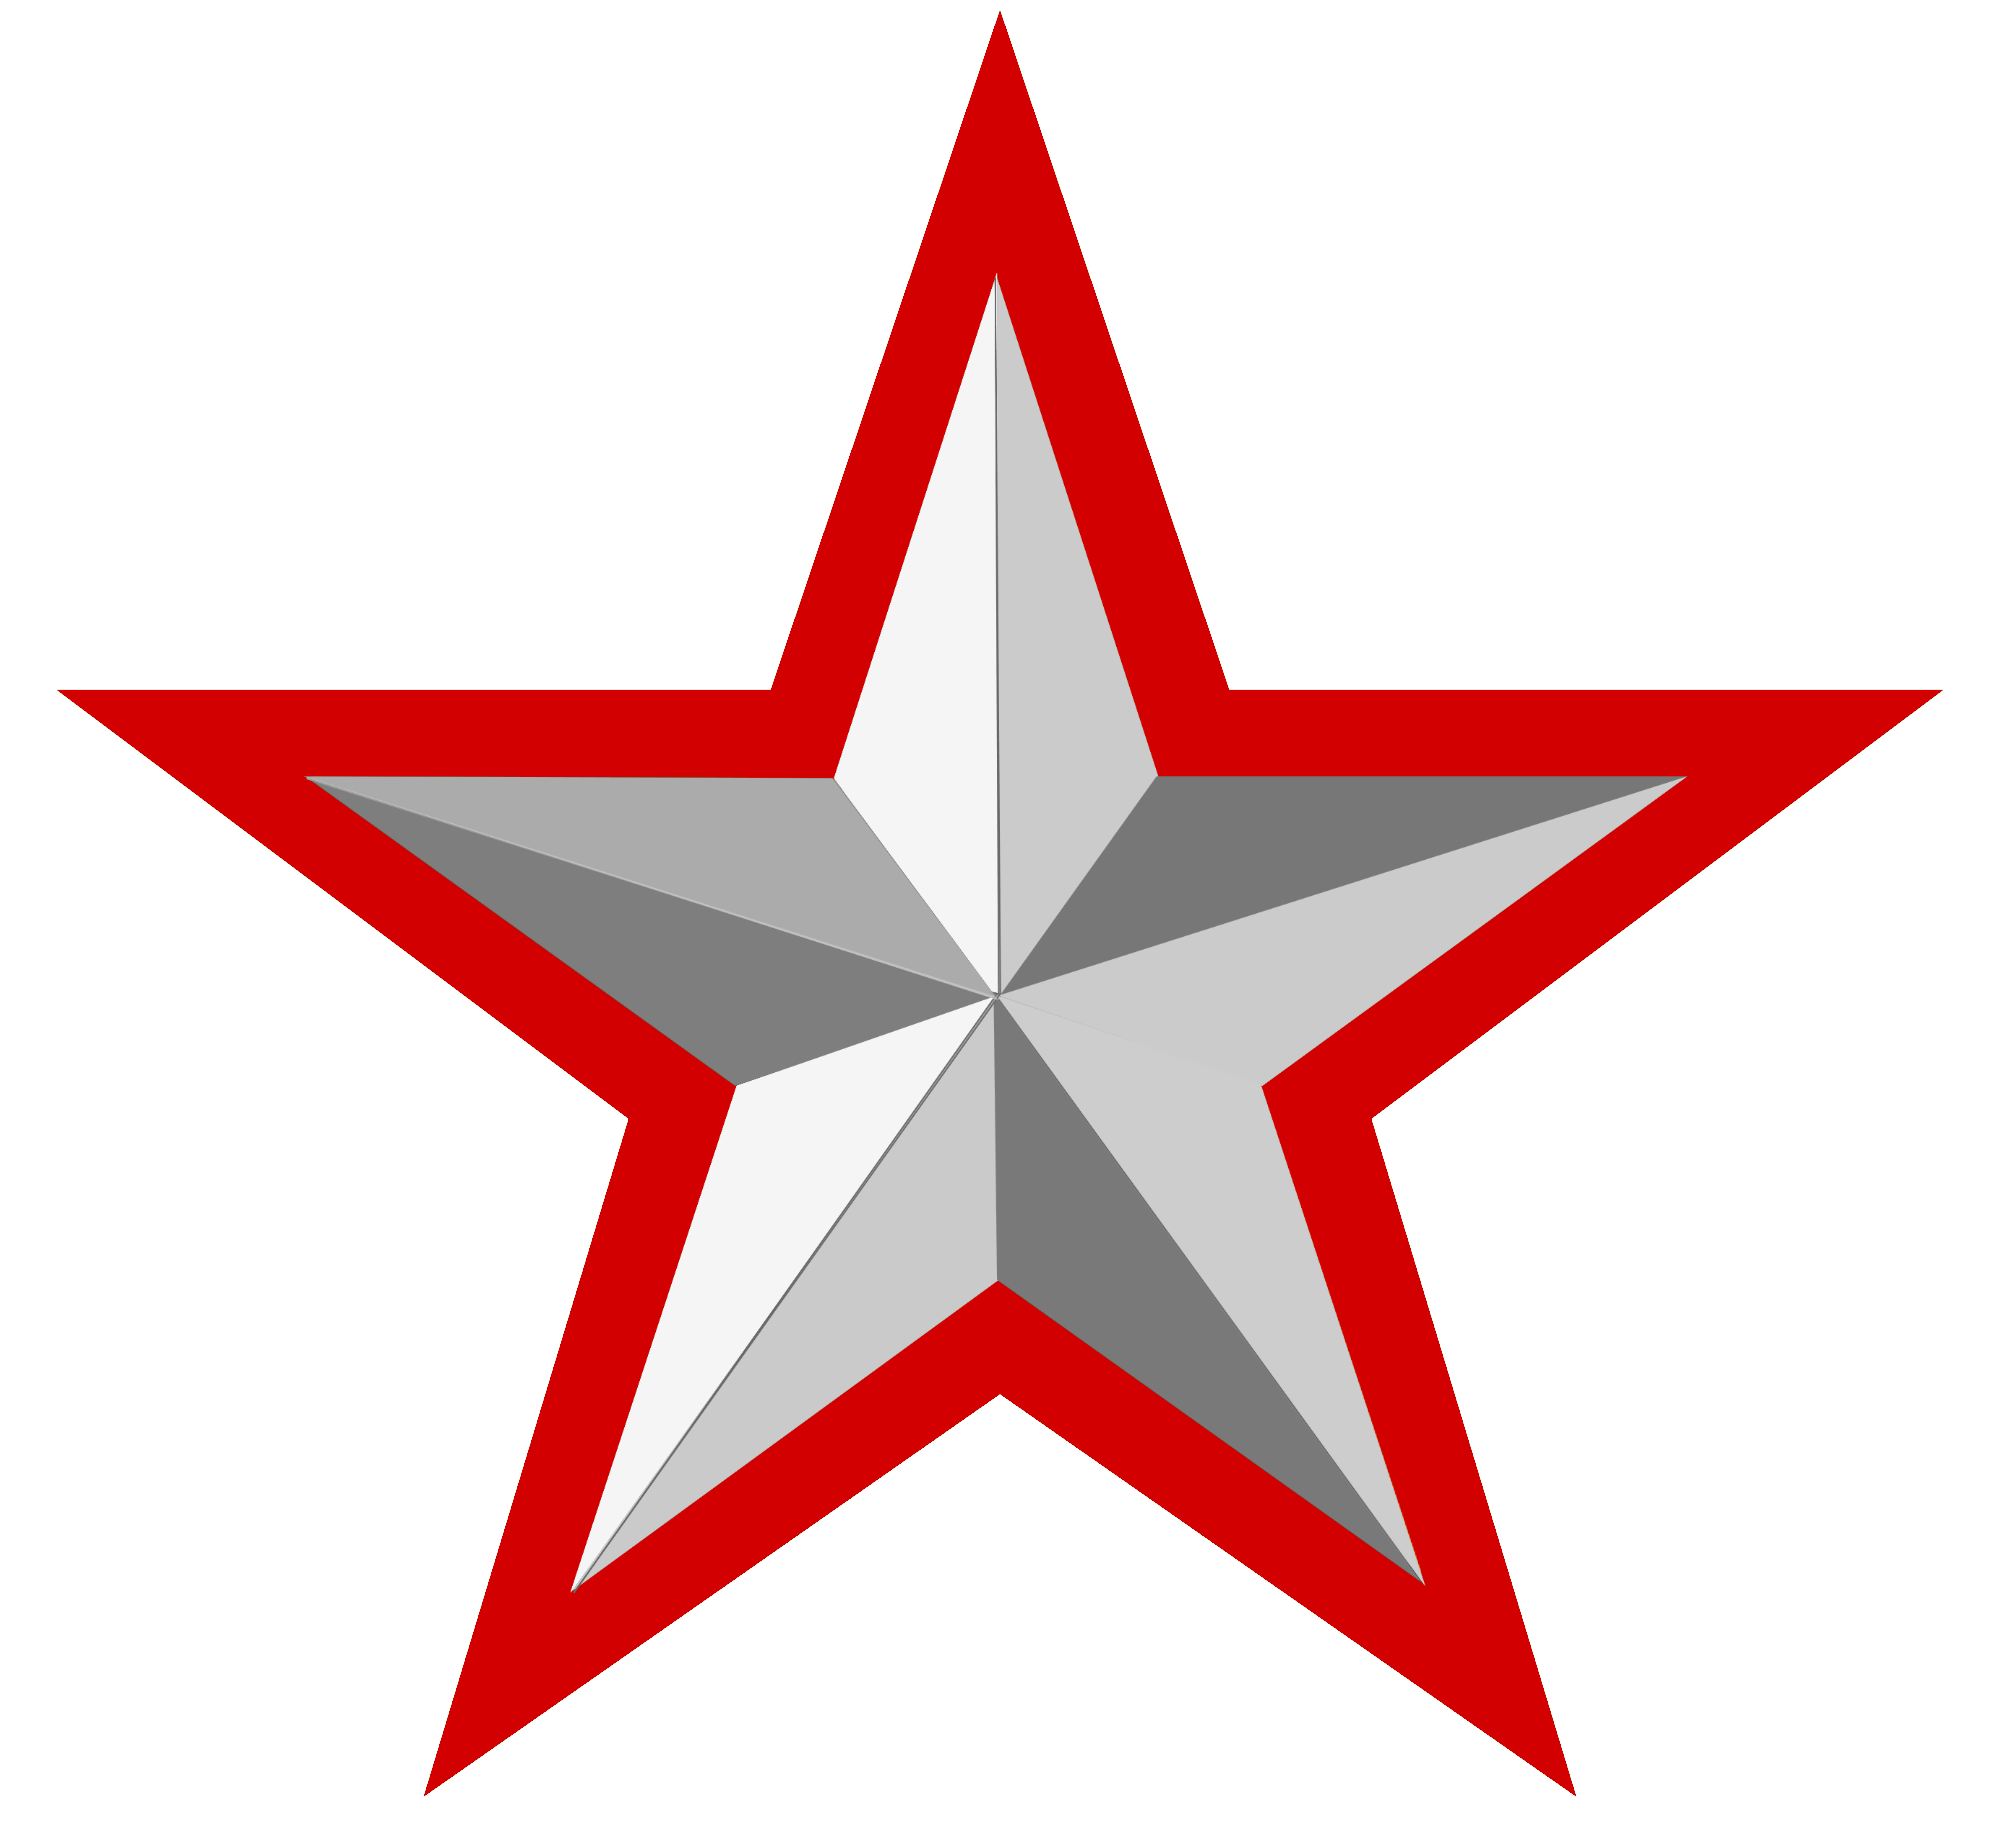 2000x1833 Filesilver Star With Red Border.png